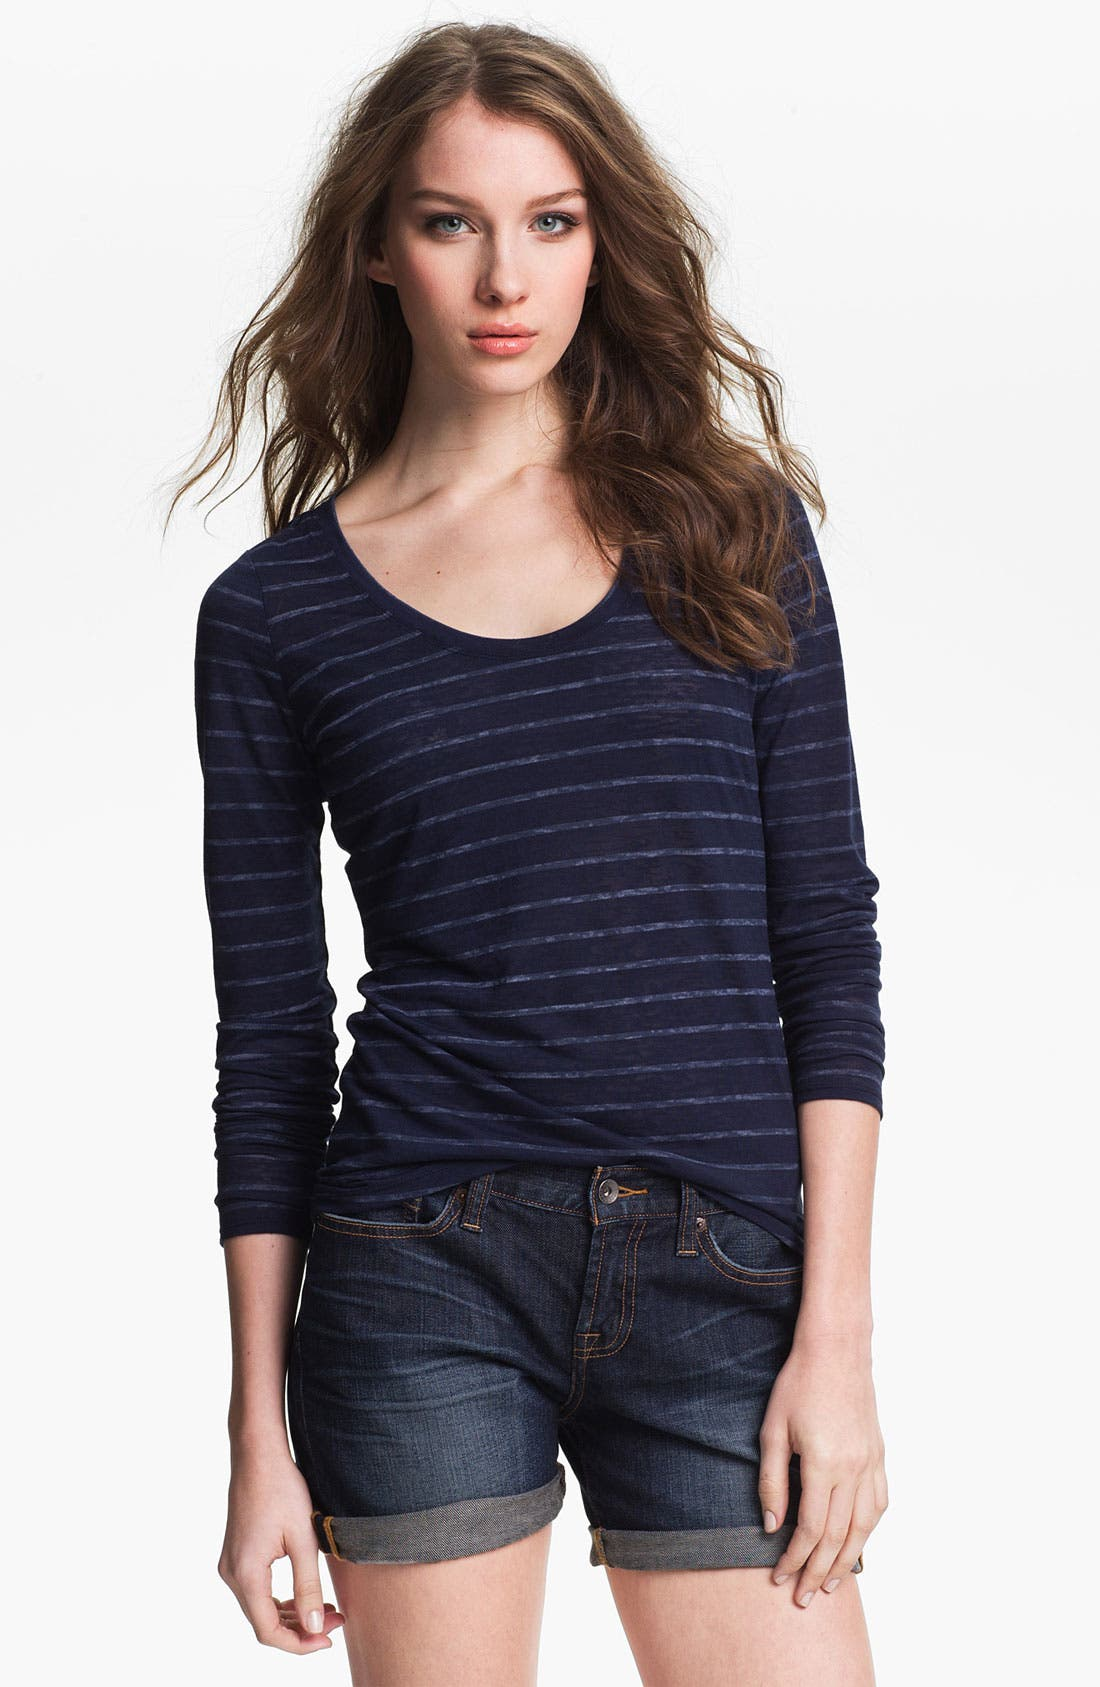 Alternate Image 1 Selected - Two by Vince Camuto Stripe Tee